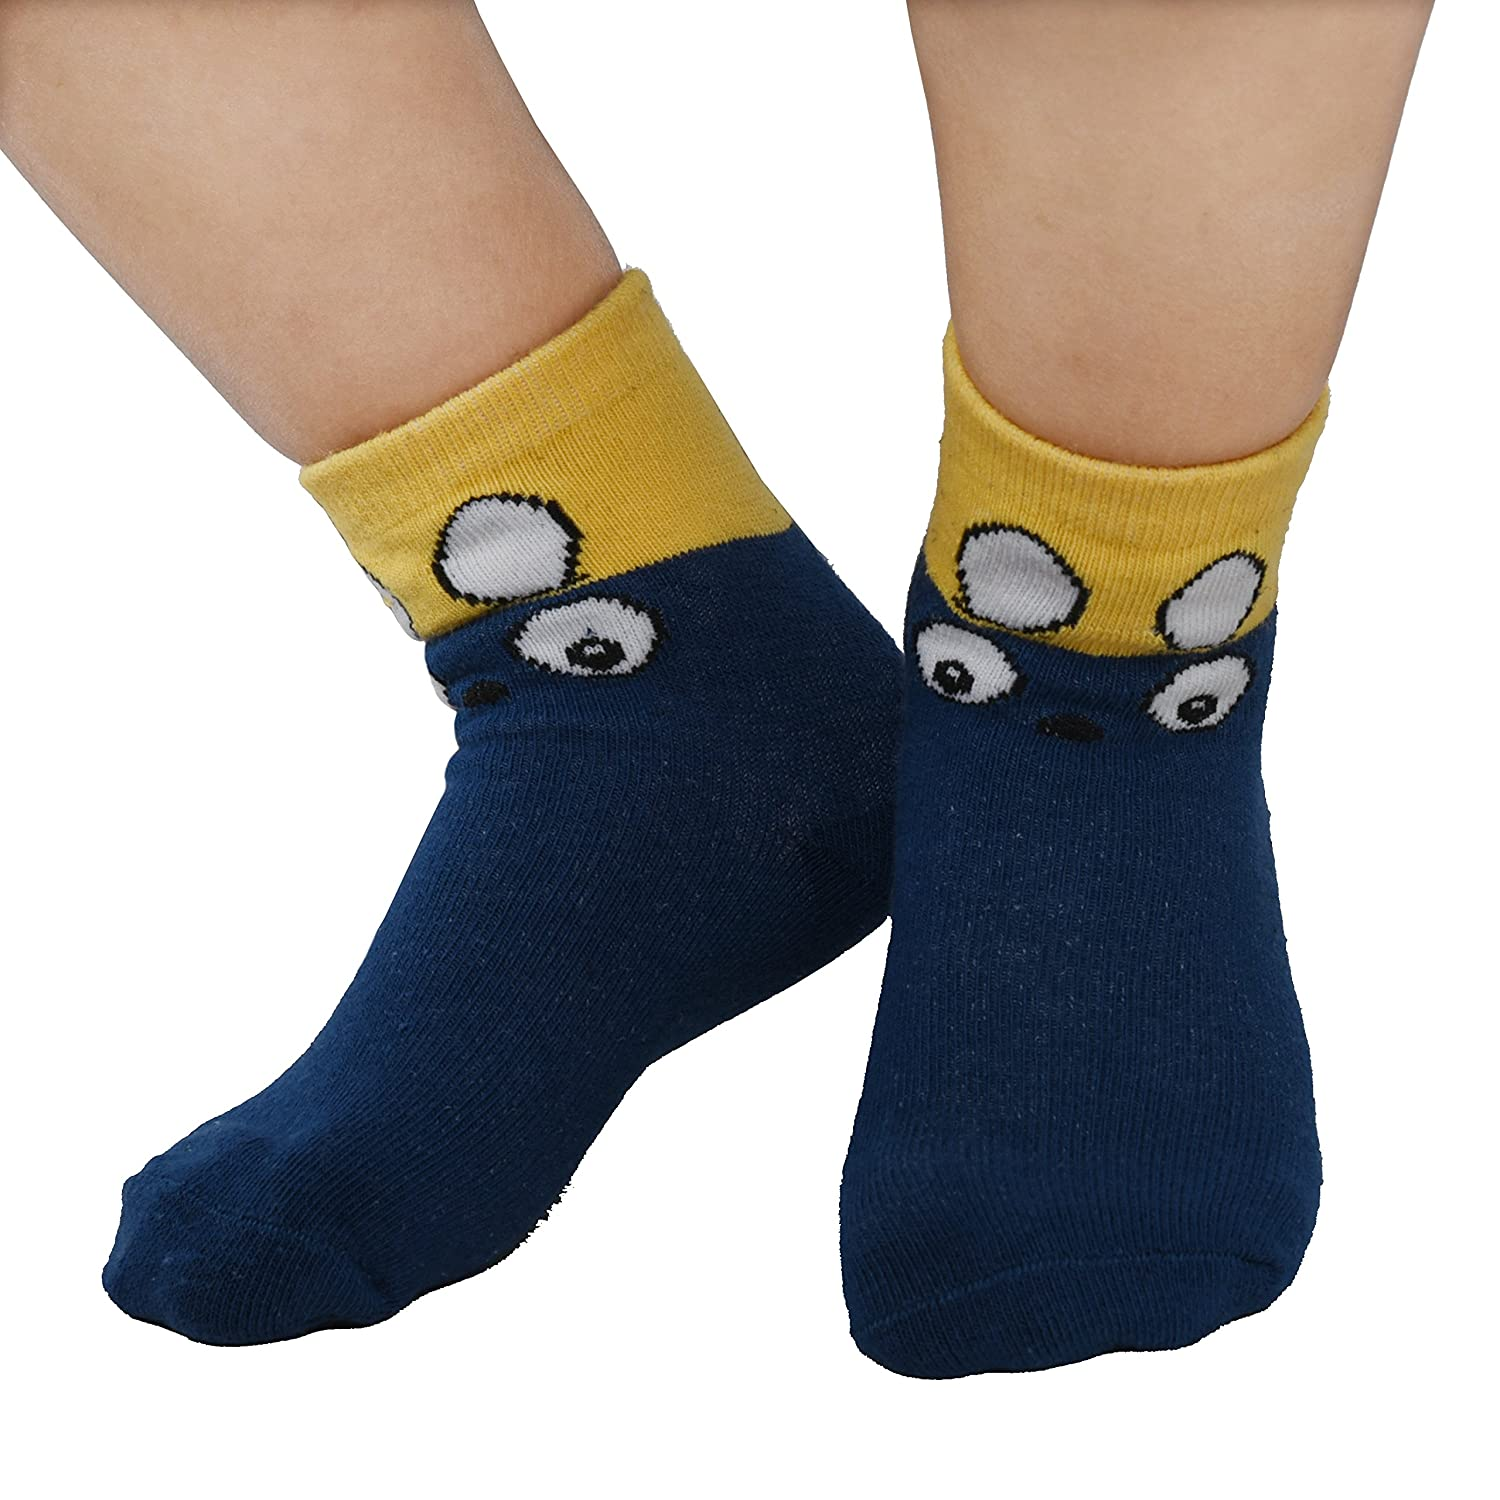 Kids Cotton Novelty Cute Animals Seamless Toddler Kids Socks 5 Pack Multicolor03, Large//Suggest Age 6-8 years